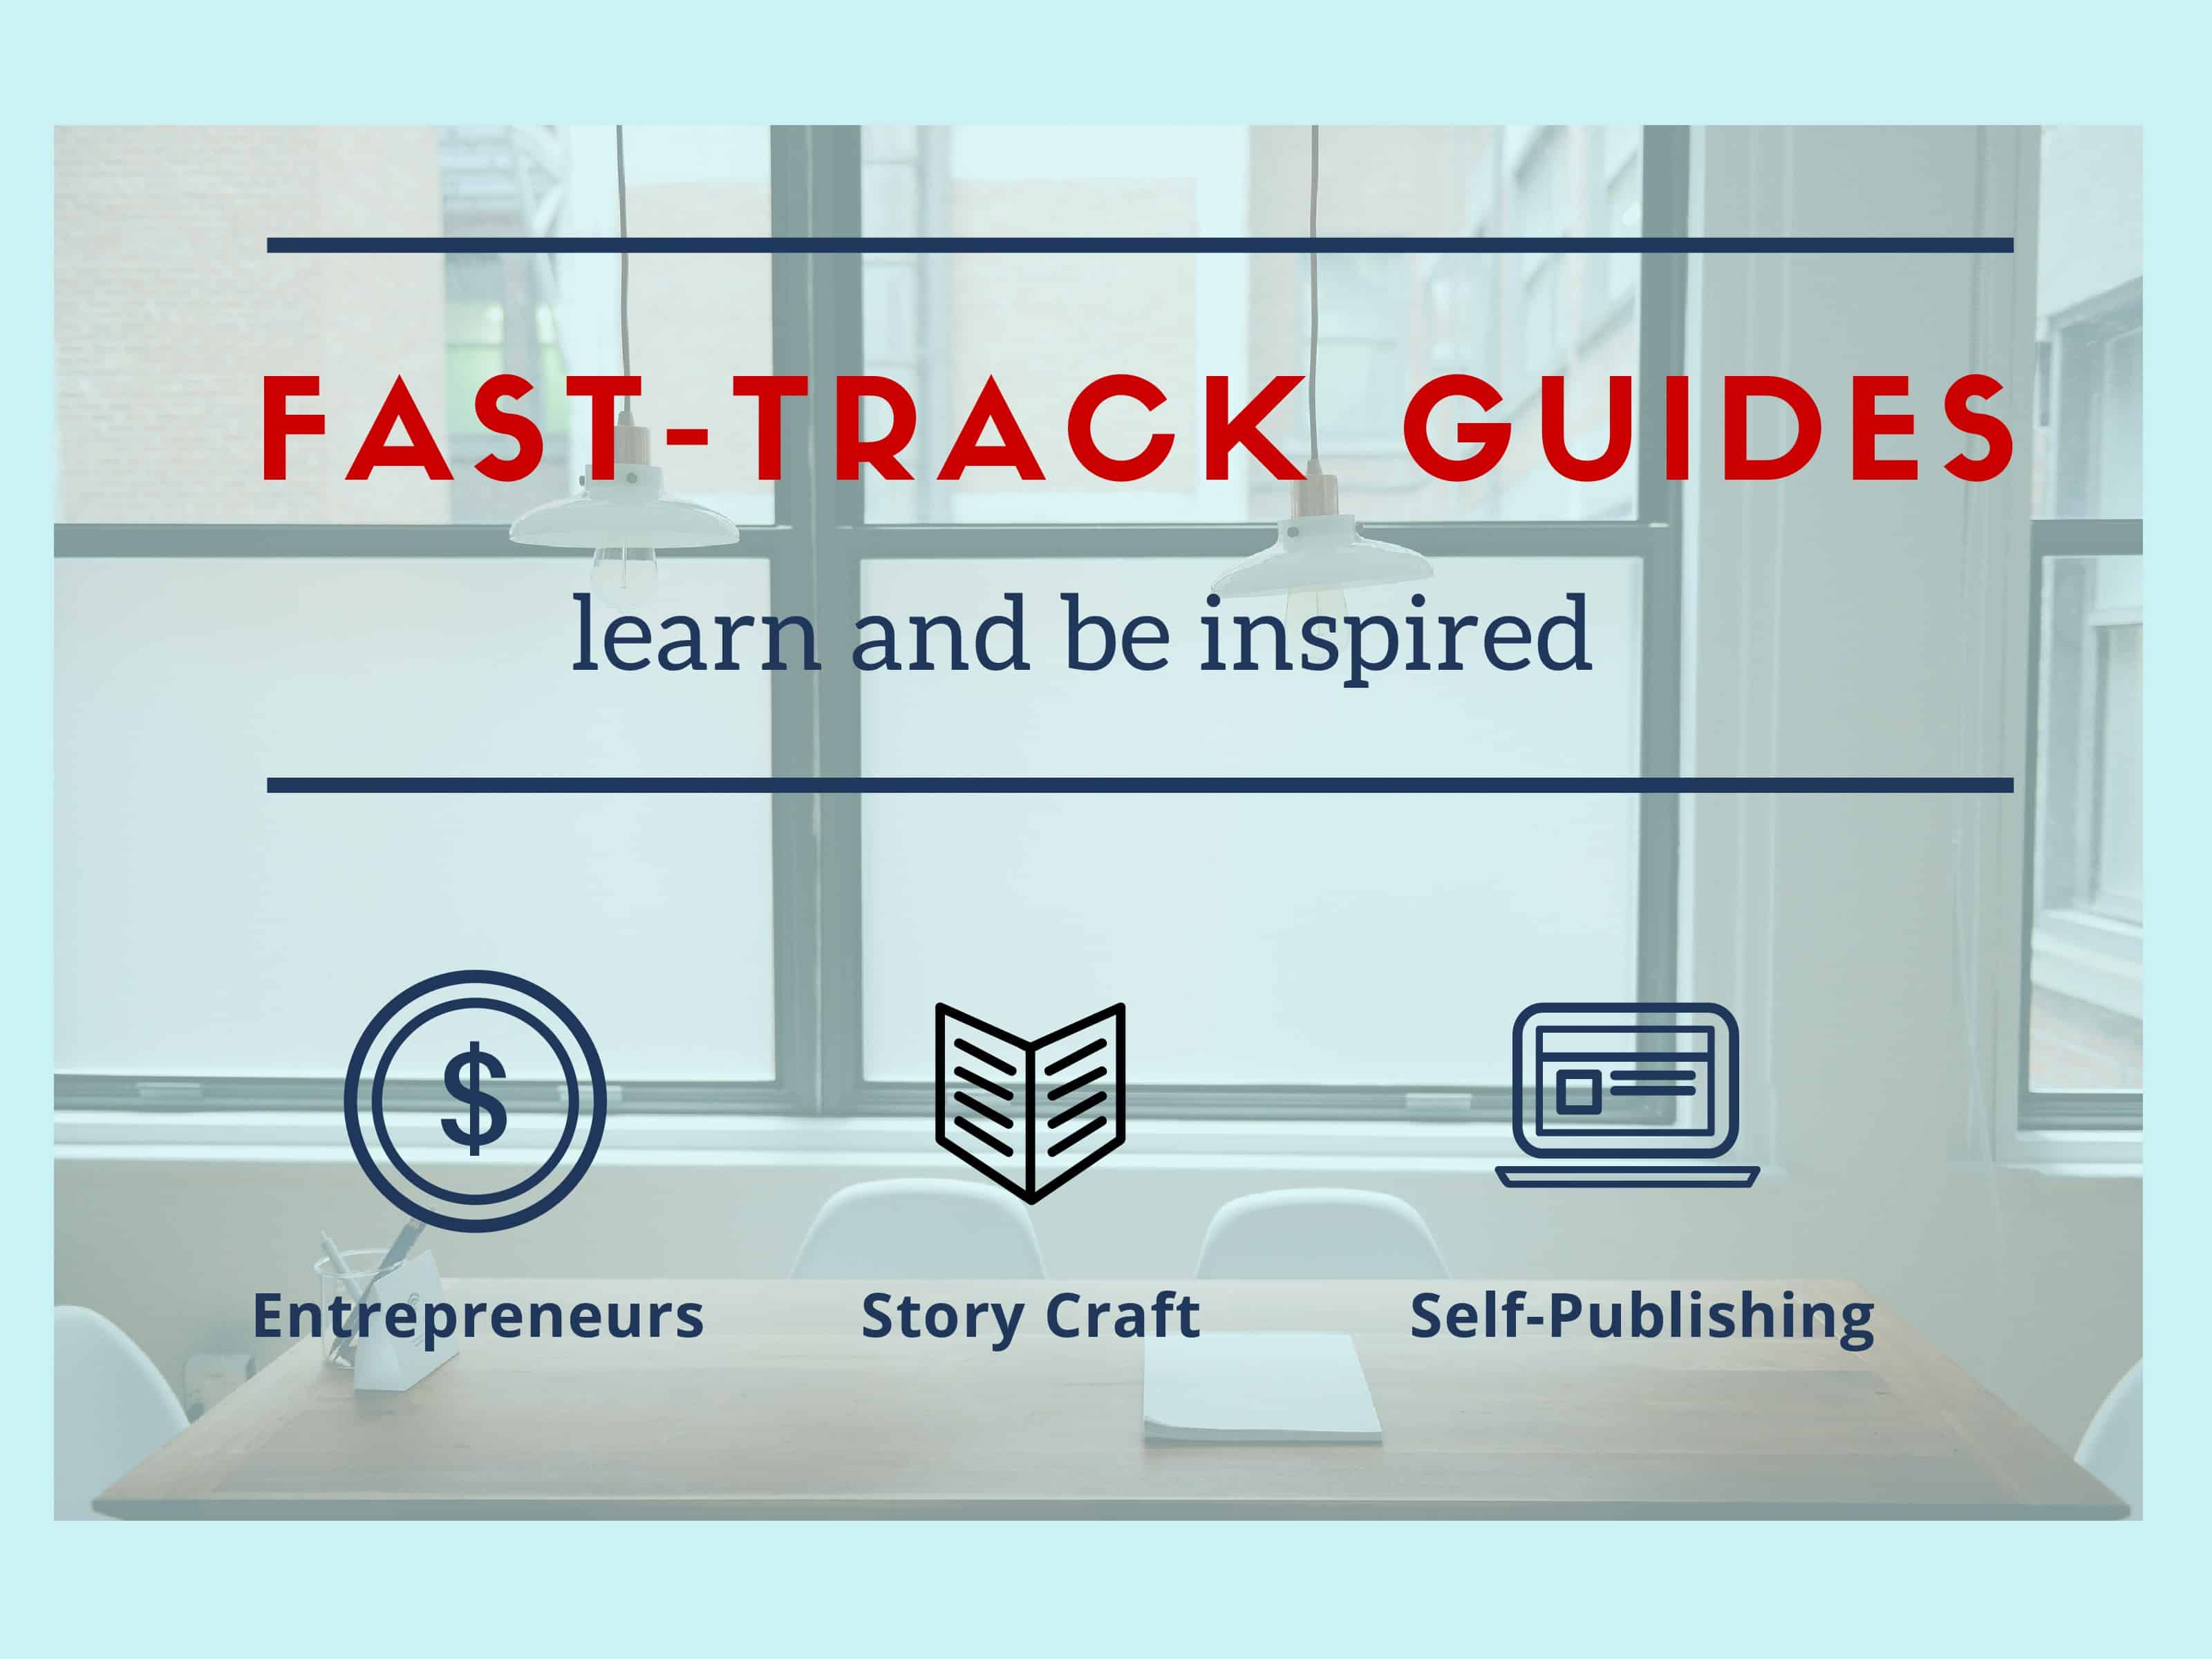 fast-track guides